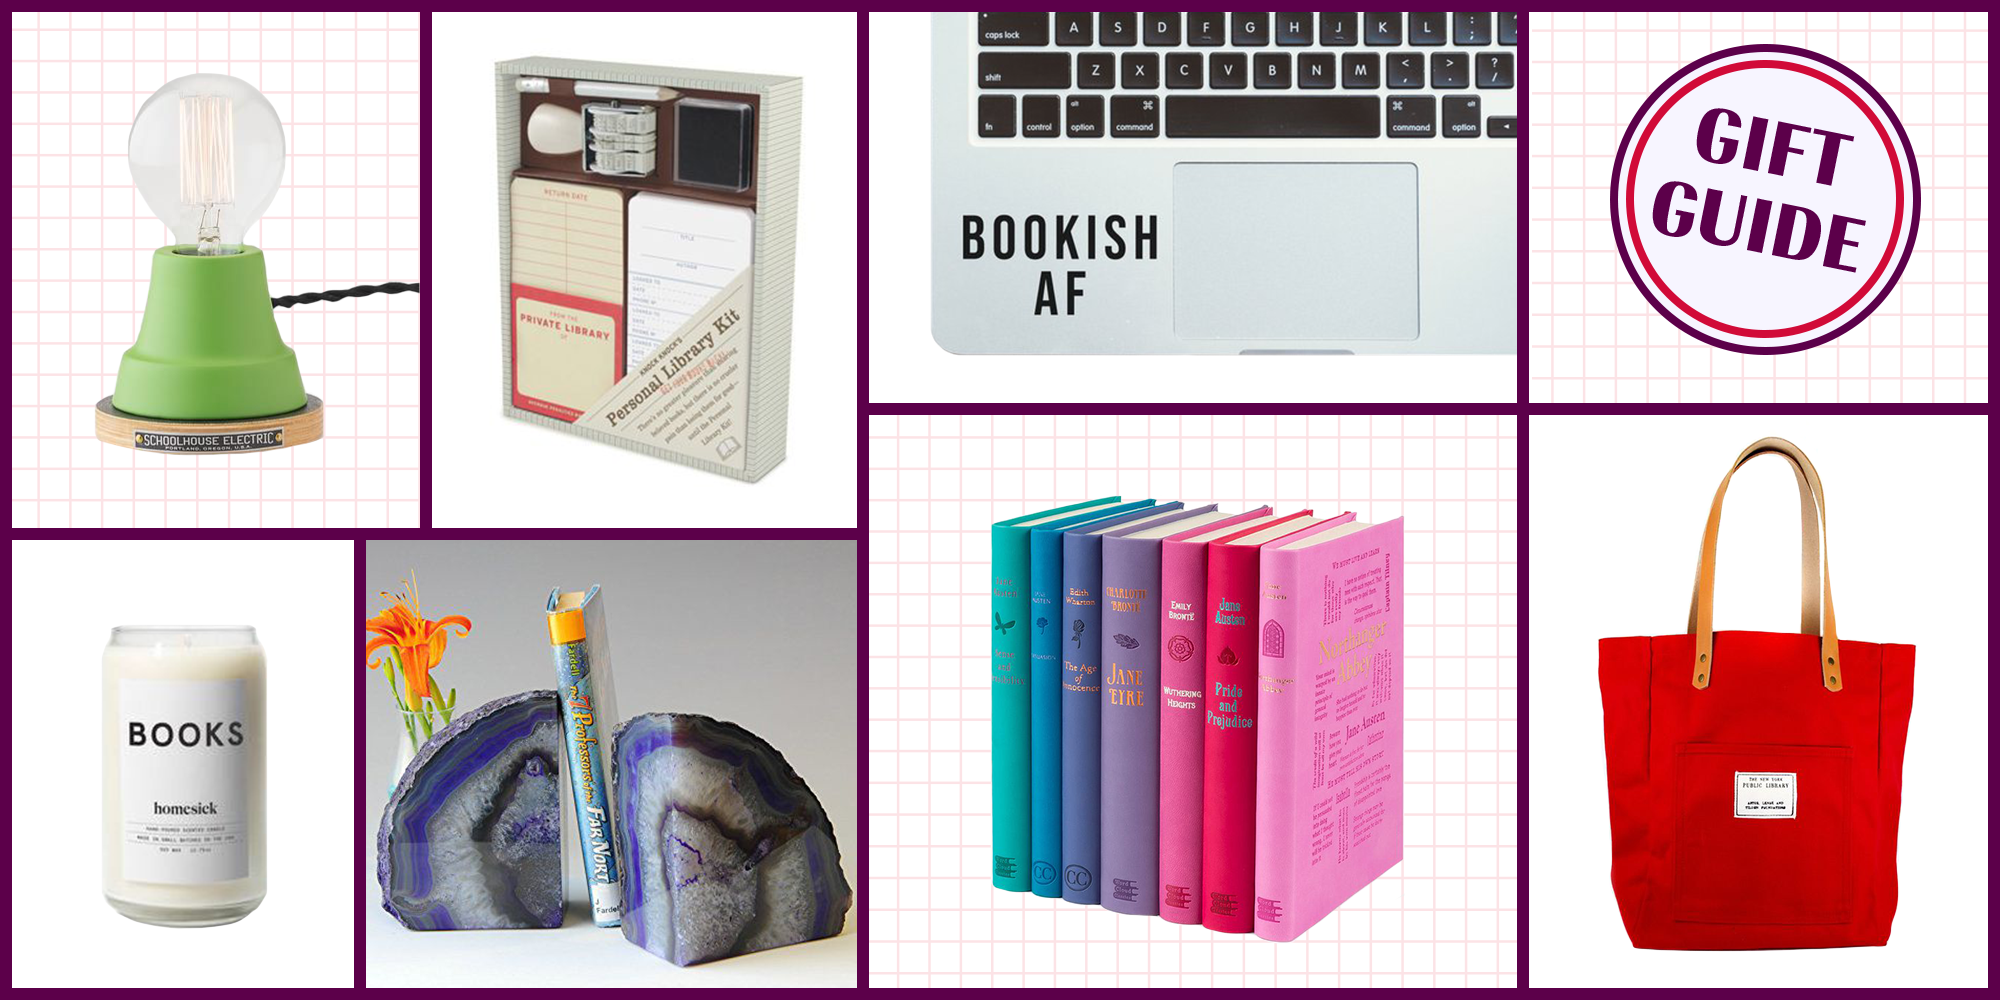 16 Christmas Gifts for Book Lovers 2017 - Best Book Gifts for Readers